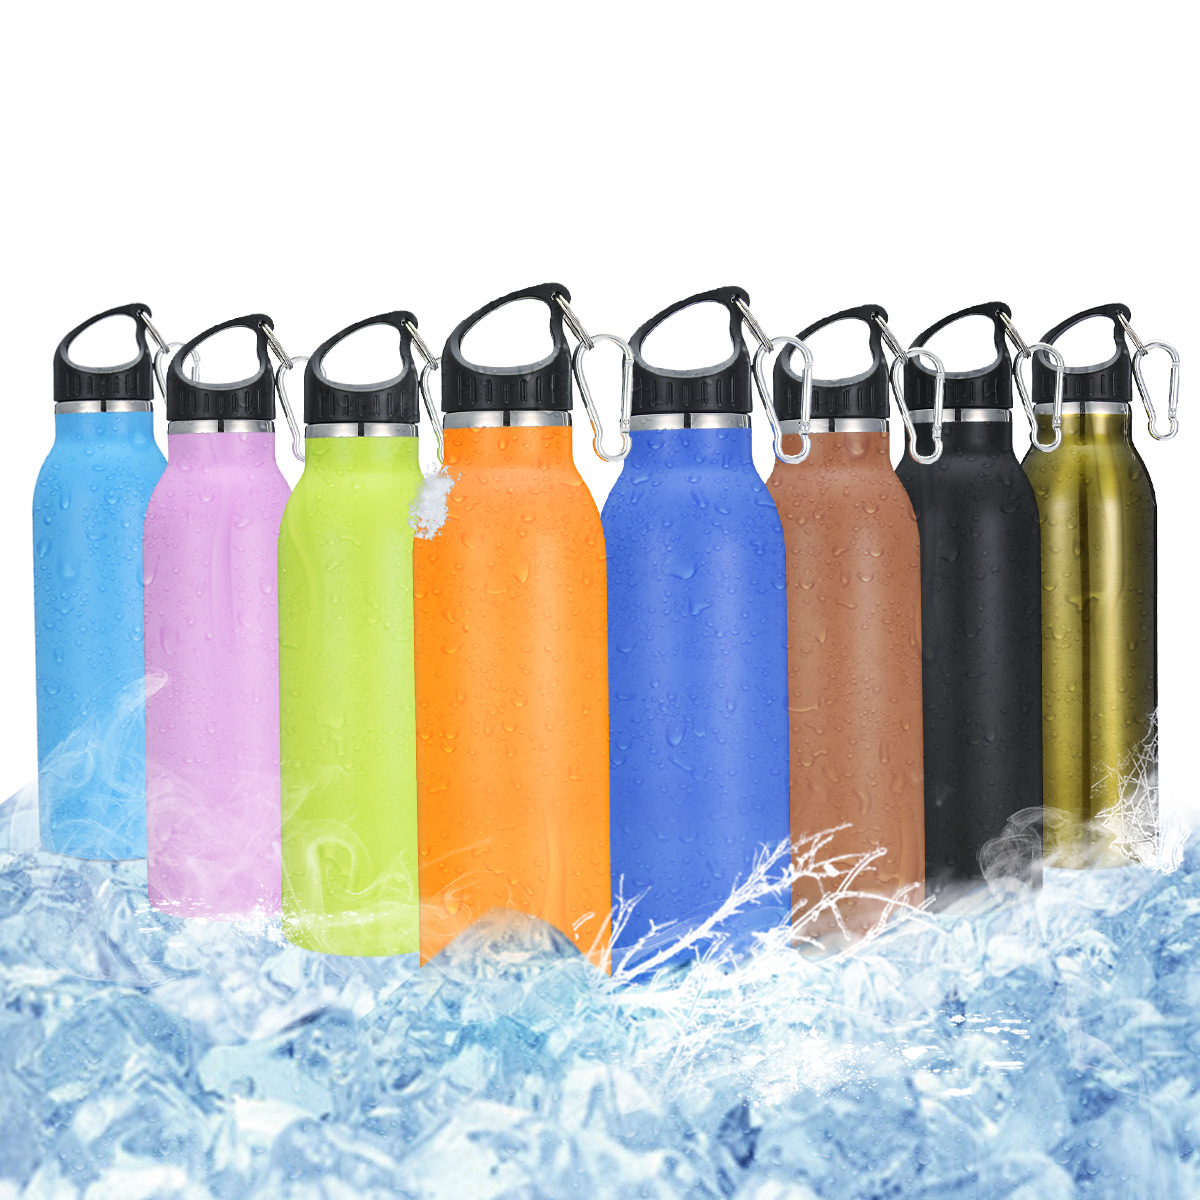 KING DO WAY Vacuum Stainless Steel Water Bottle with 8 Colors Available Simple Shape for Work, Outdoor Transport, Travel Use